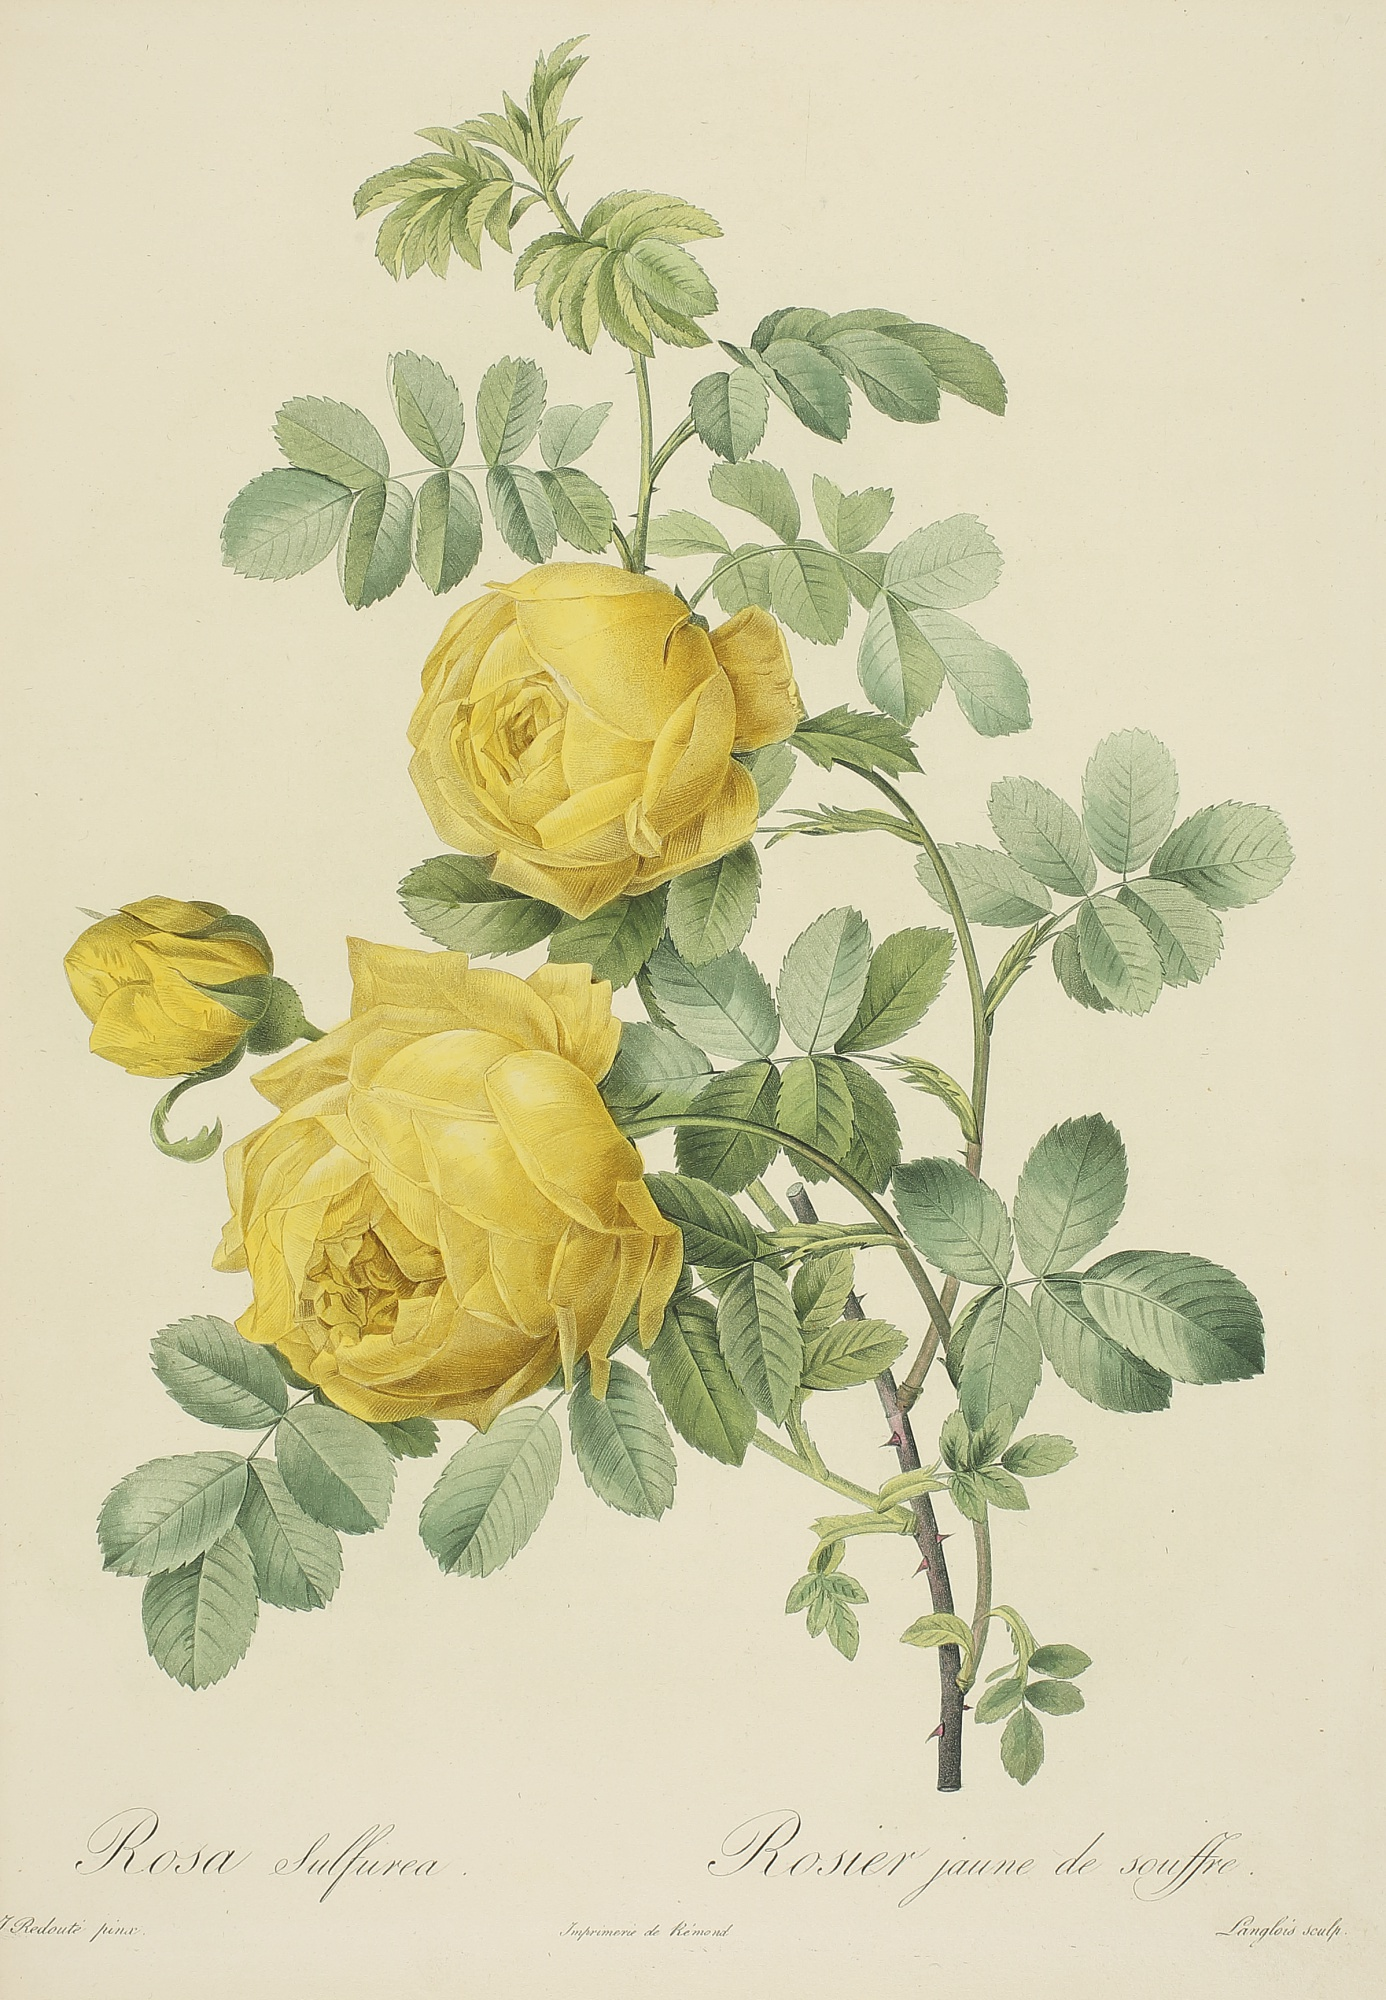 Les Roses, Three Botanical Illustrations by Pierre Joseph Redouté, 1817 - 1824, 3